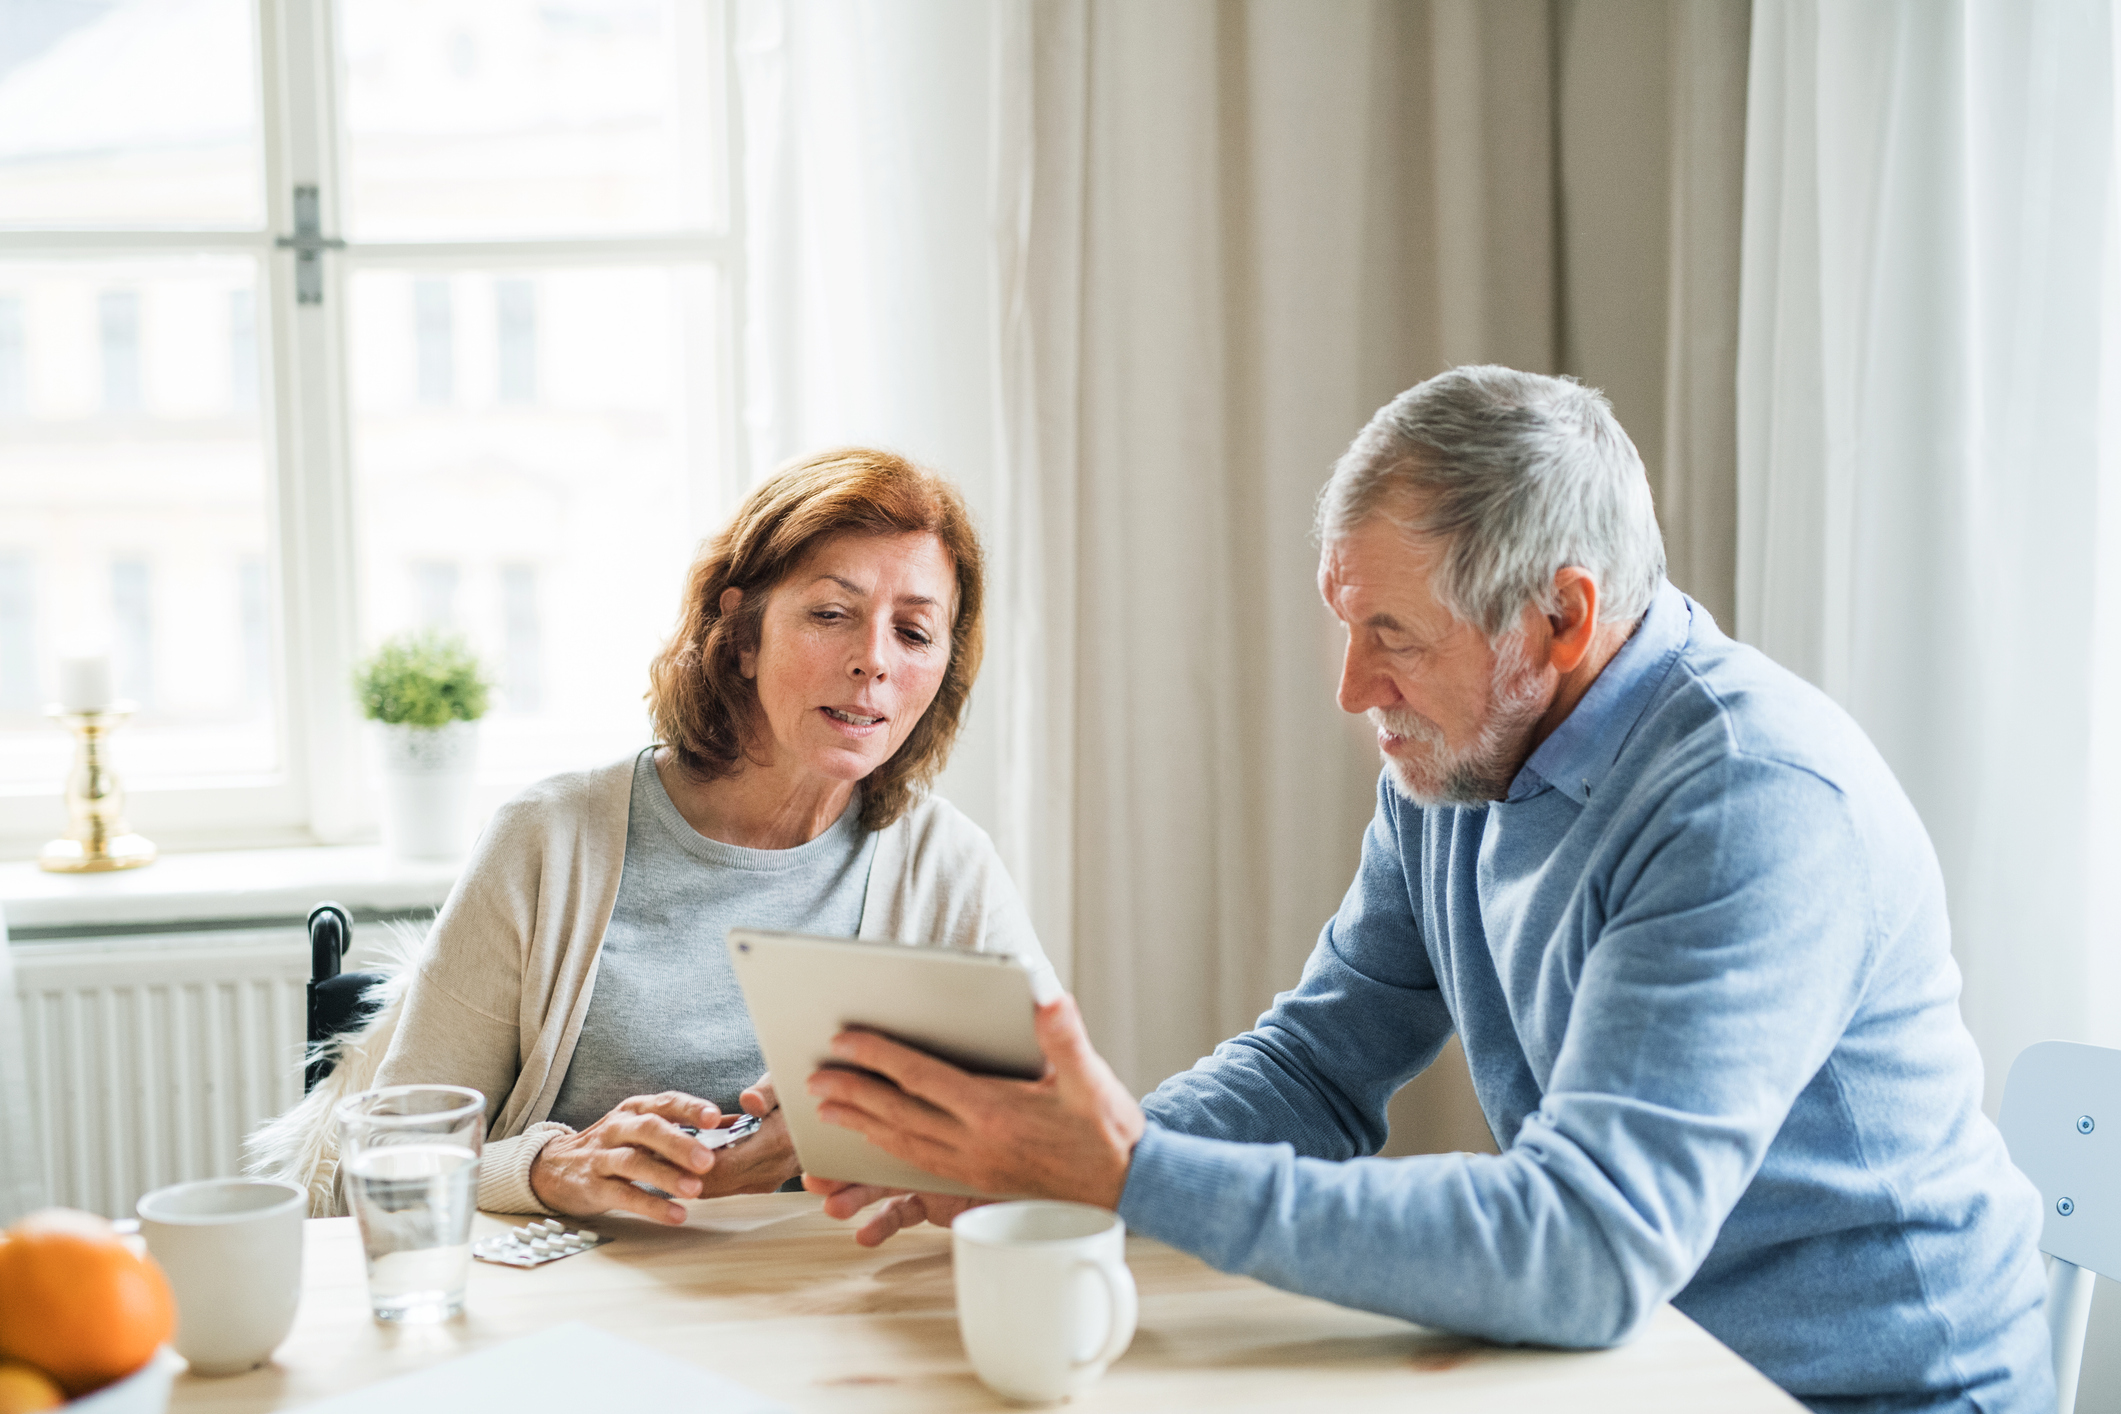 A middle-aged married couple sitting together at their kitchen table and discussing their retirement planning checklist.